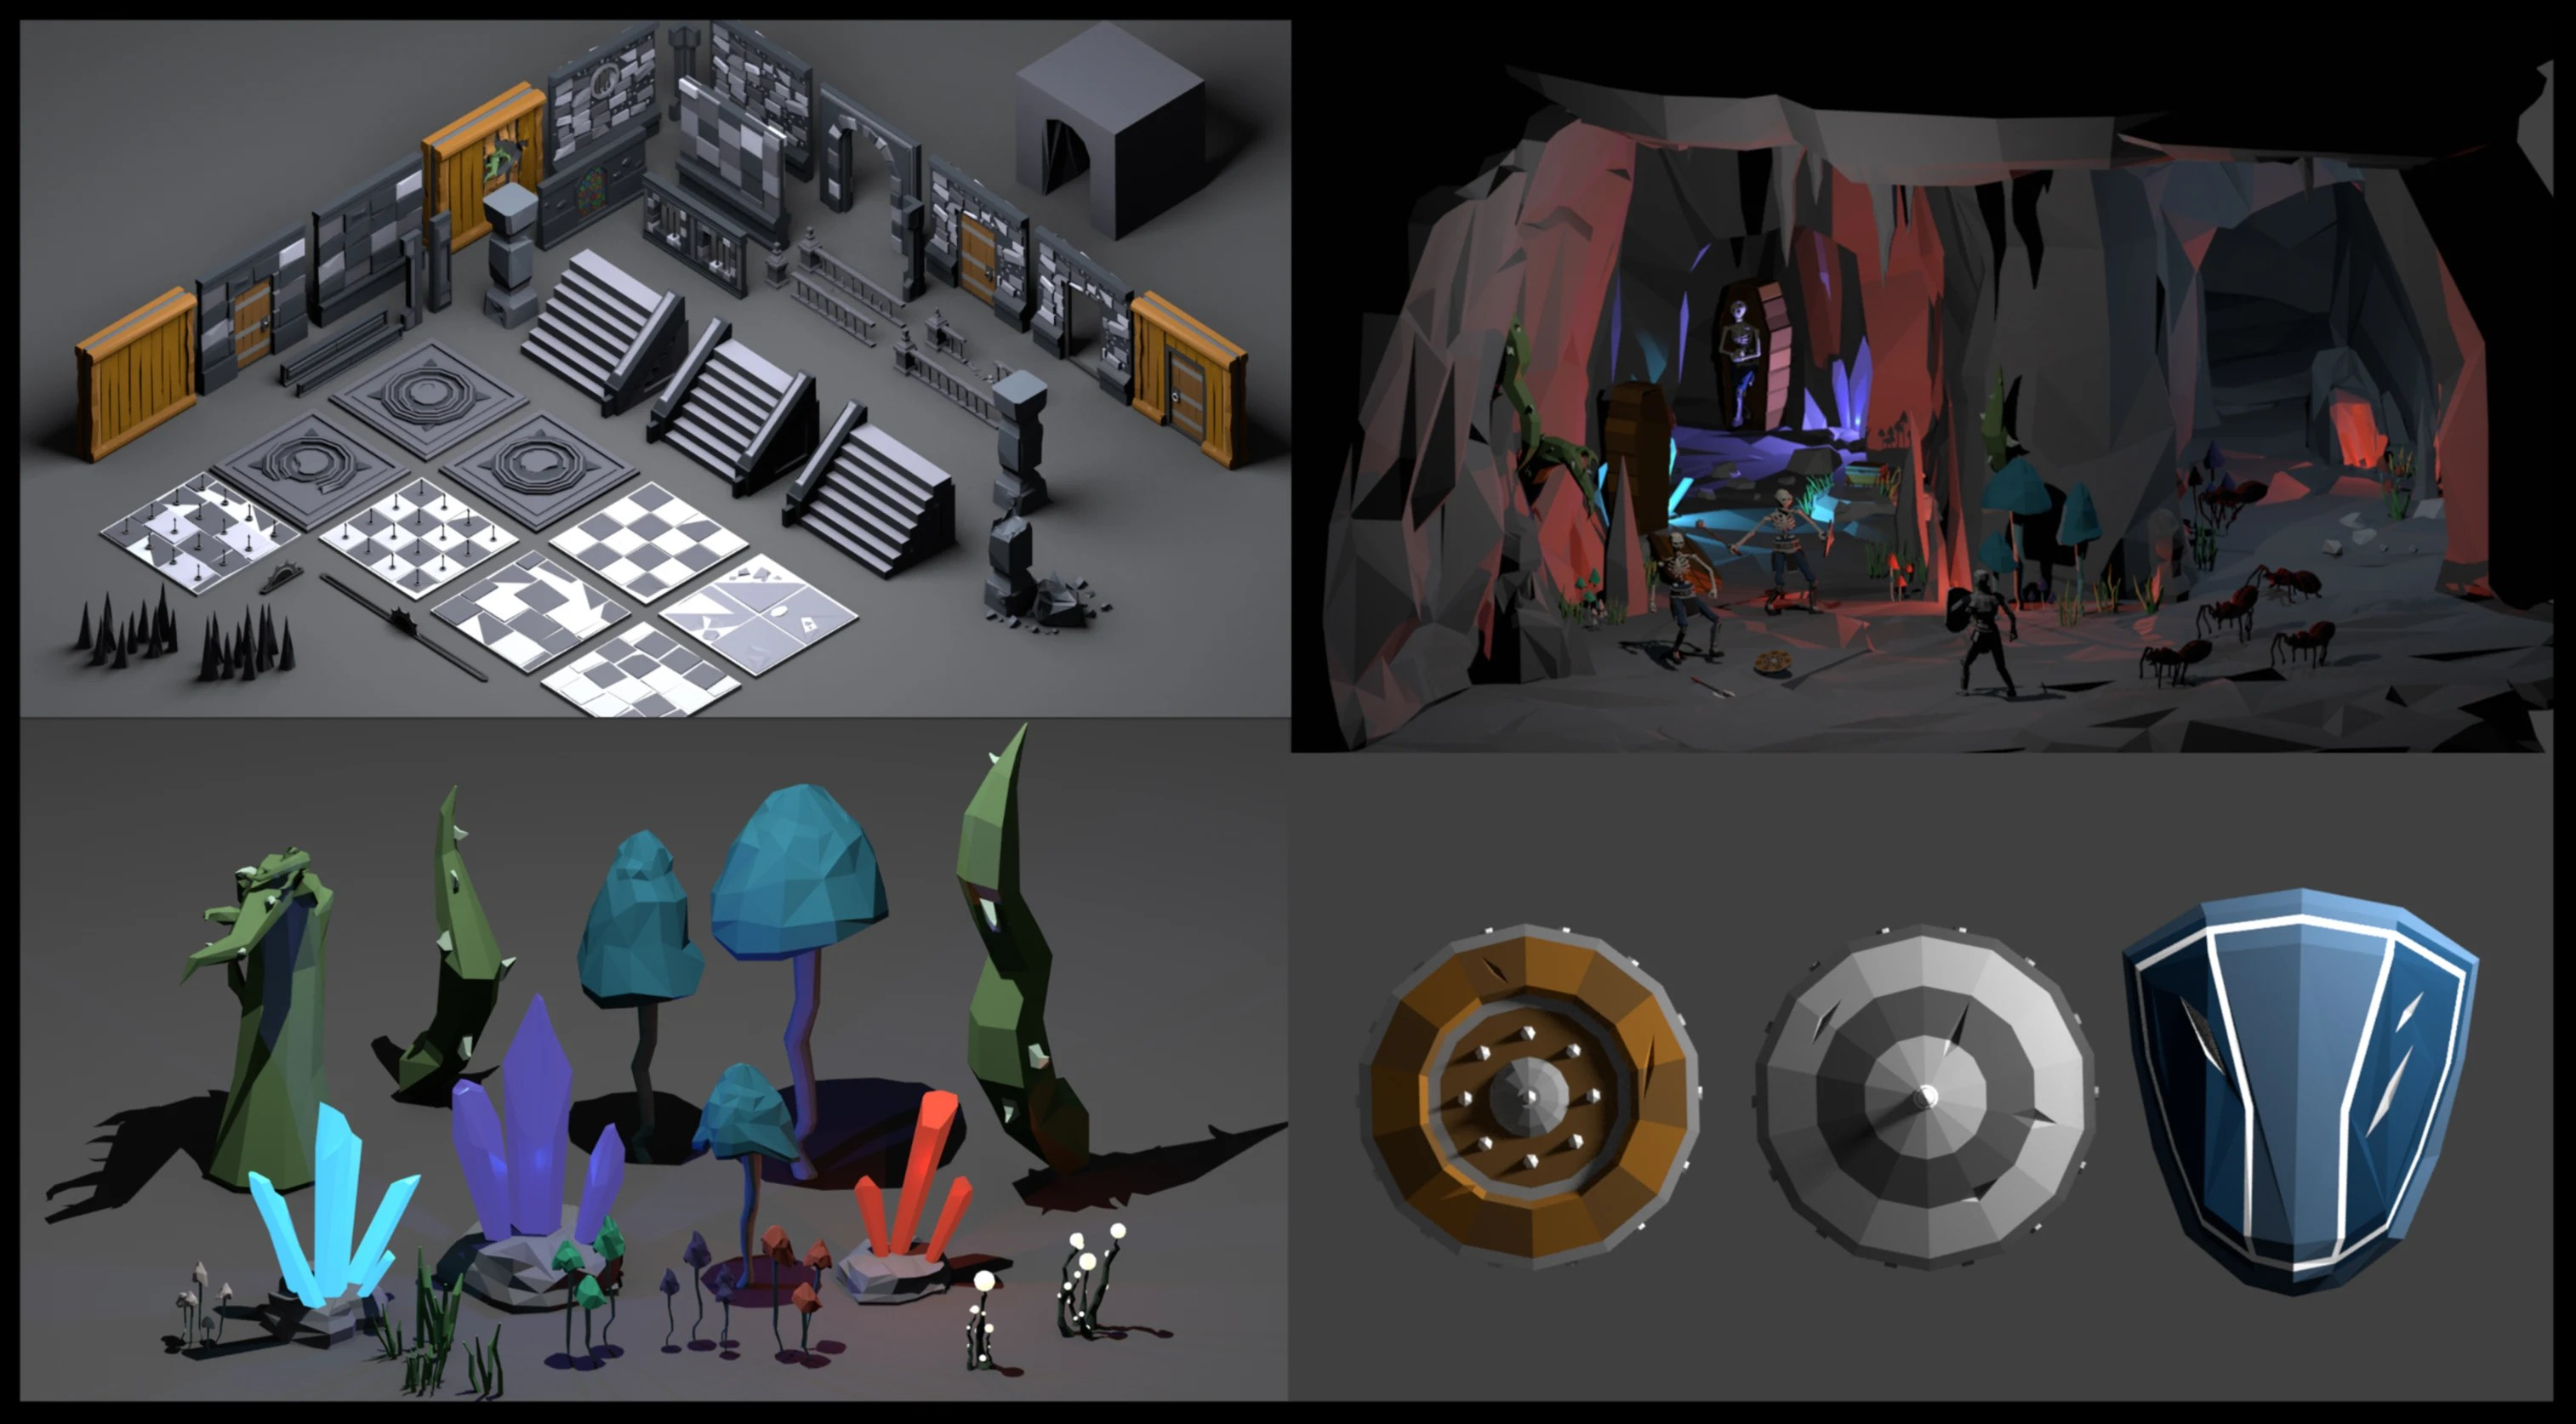 3d Modeling Rendering And Animation Create Low Or High Poly 3d Models For Games Or Render